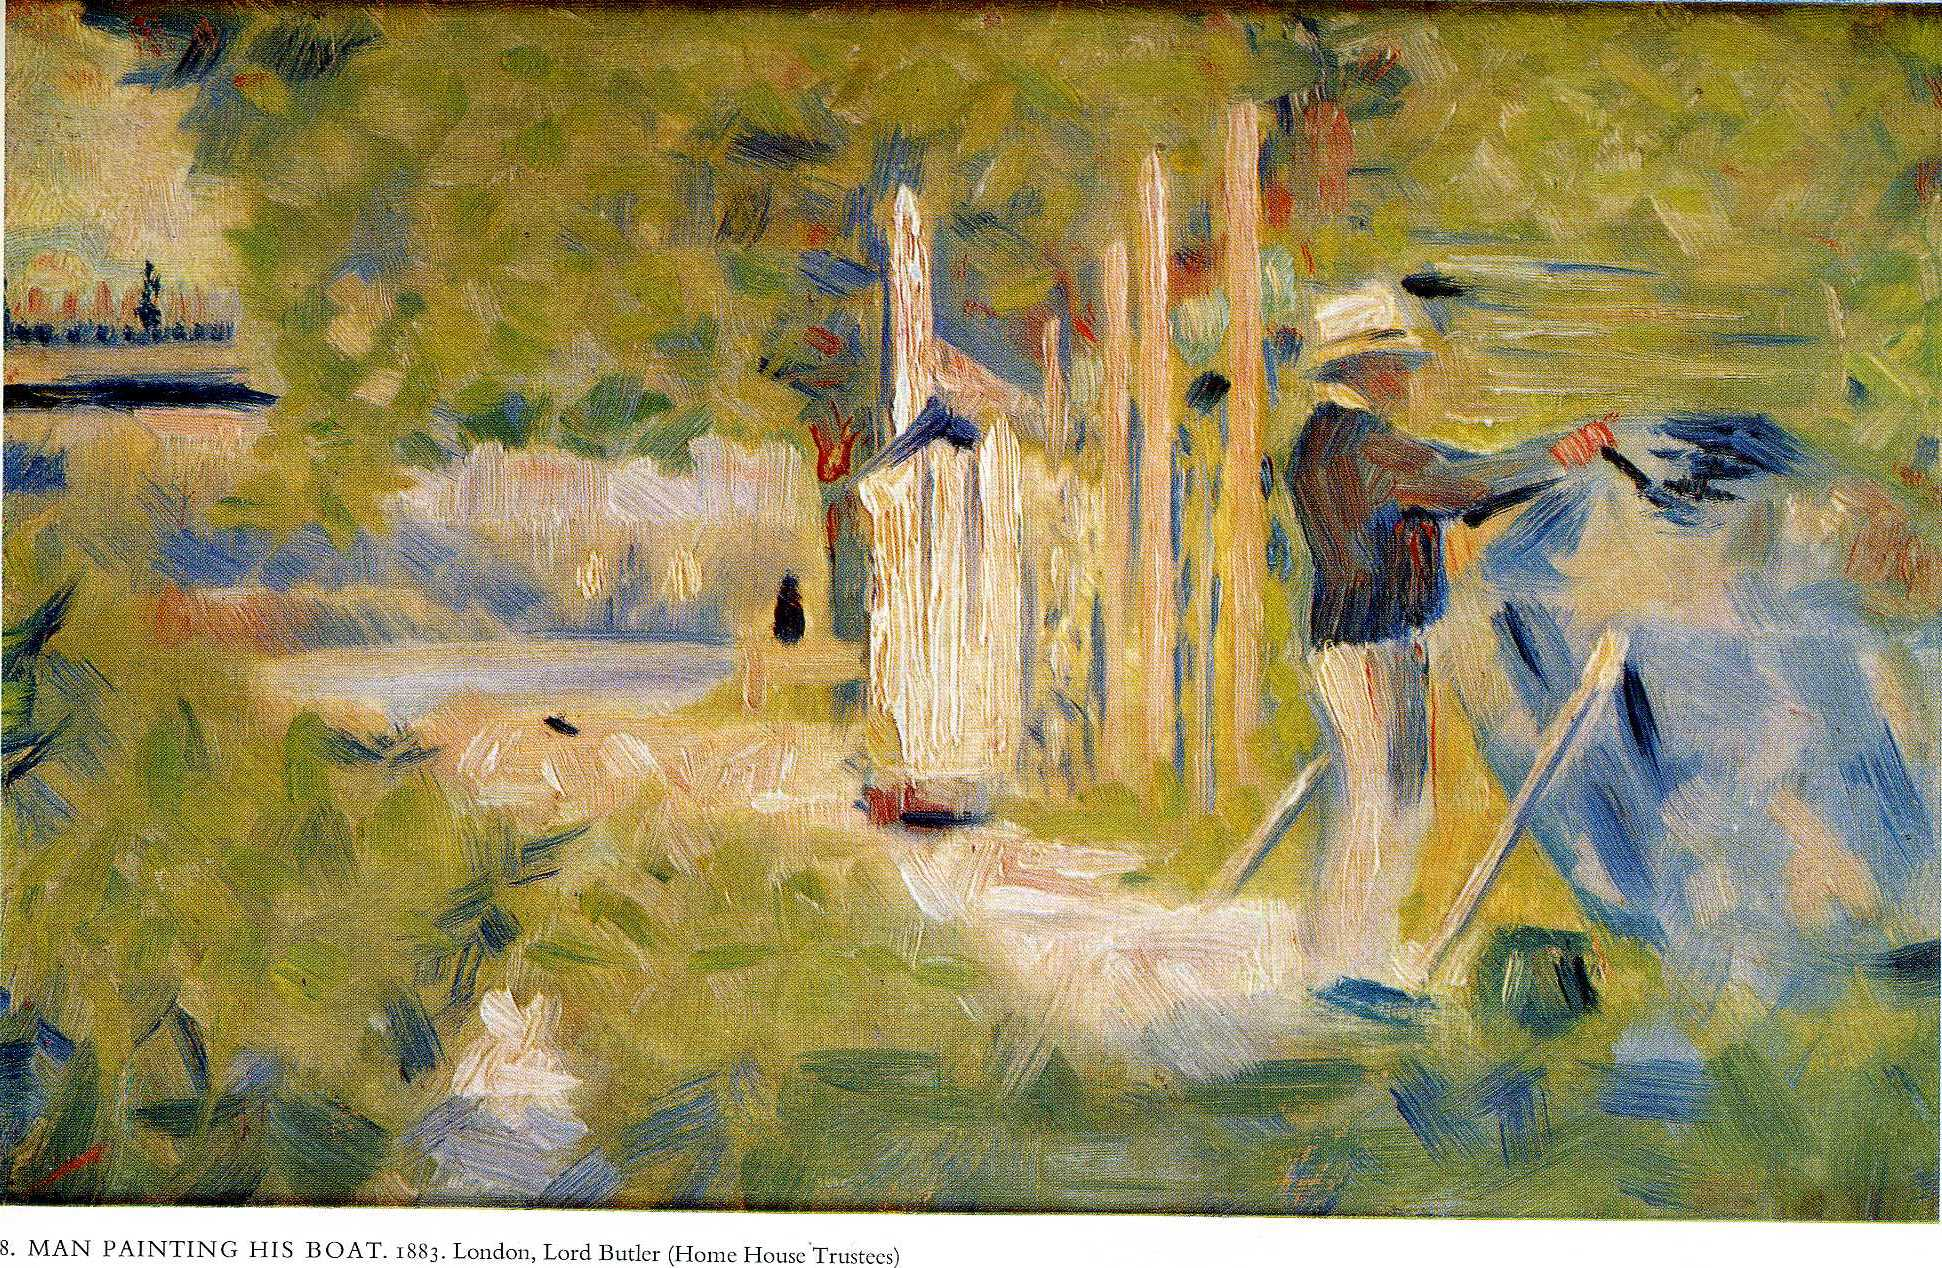 Man Painting his Boat, 1883 - Georges Seurat - WikiArt.org